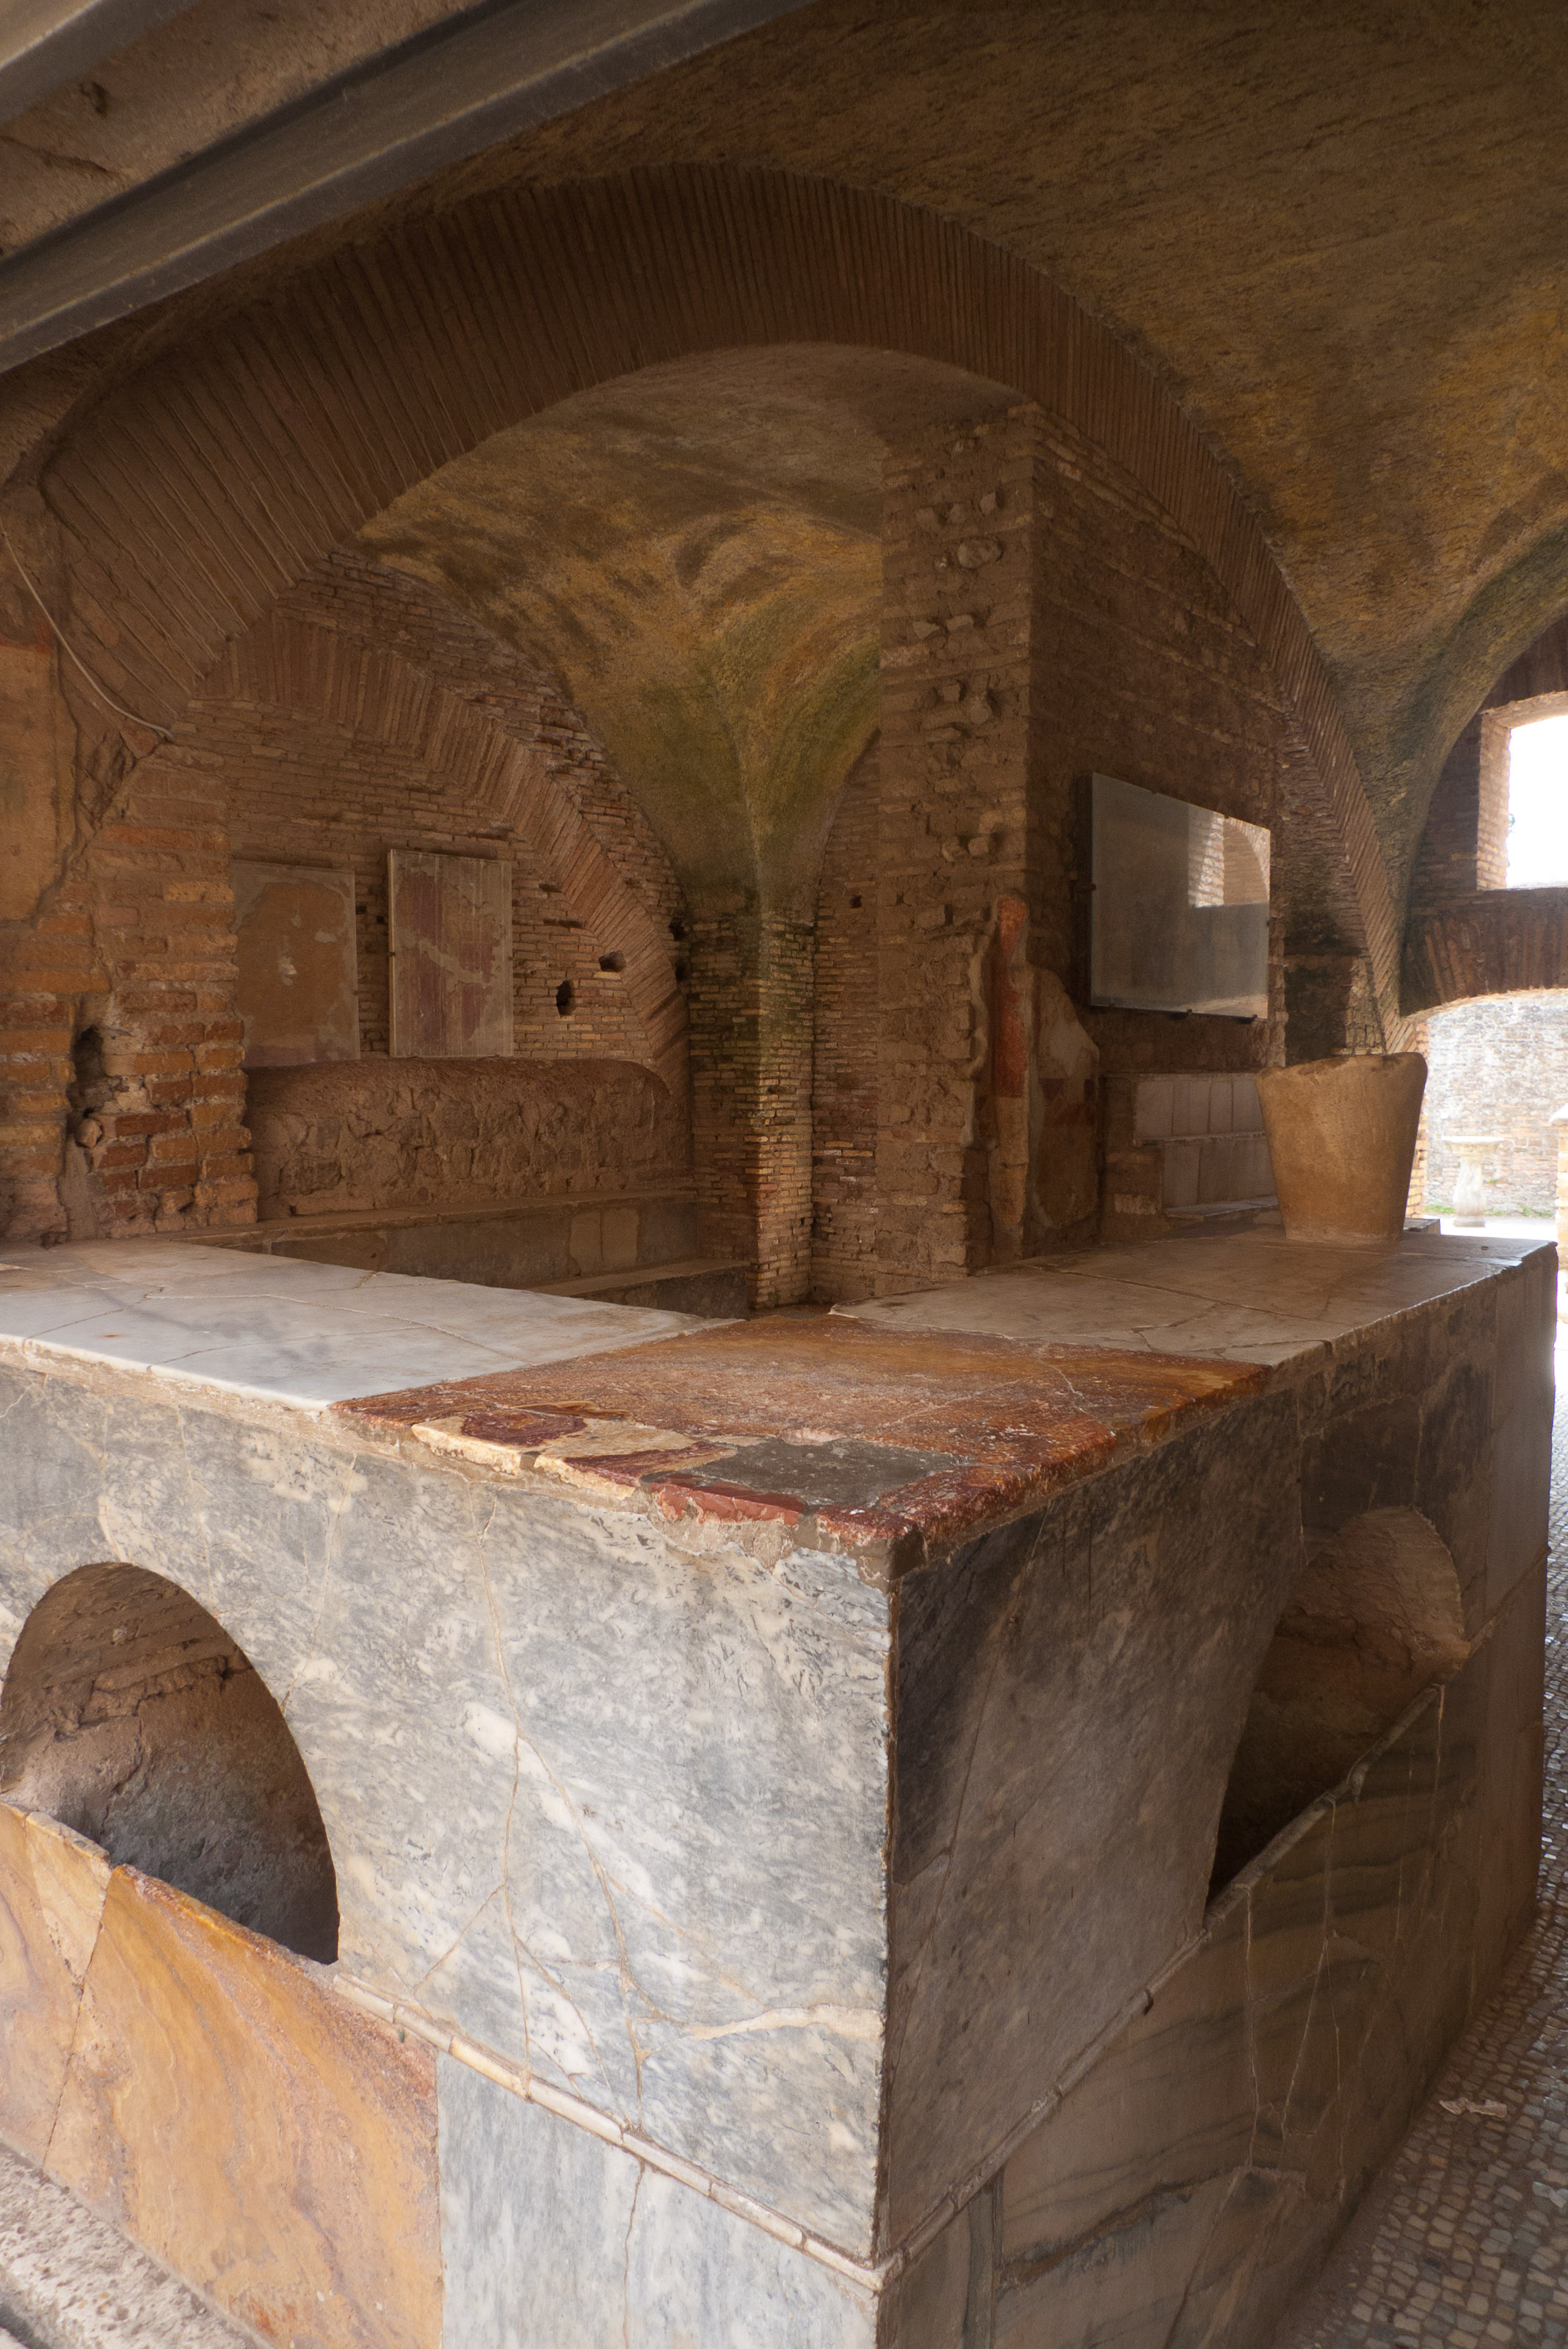 Ostica Antica - the Thermopolium